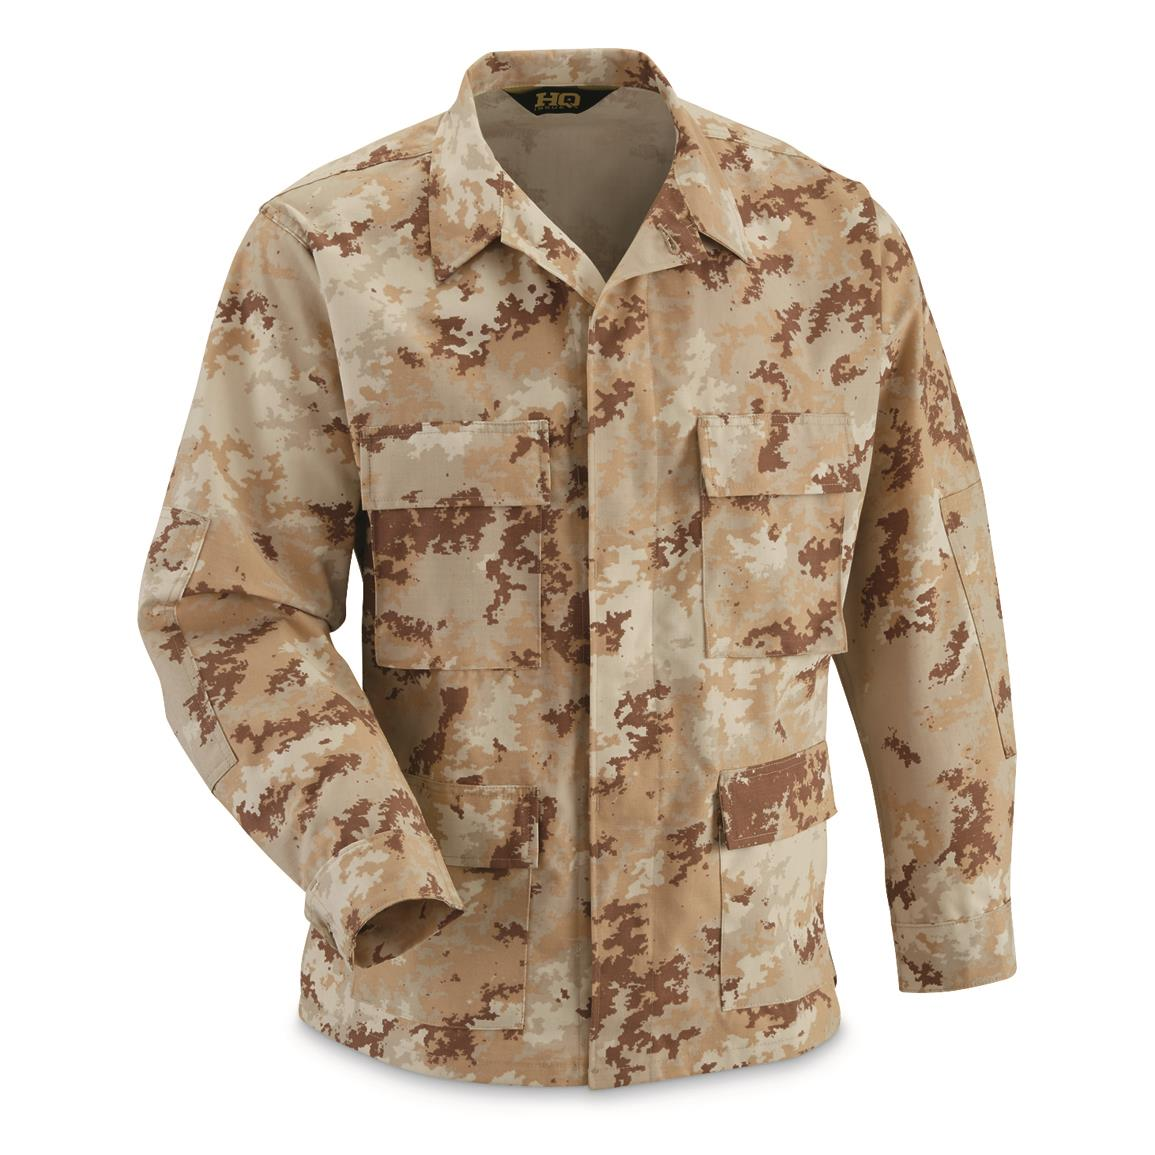 HQ ISSUE Military-style NYCO Ripstop BDU Jacket, Desert Digital